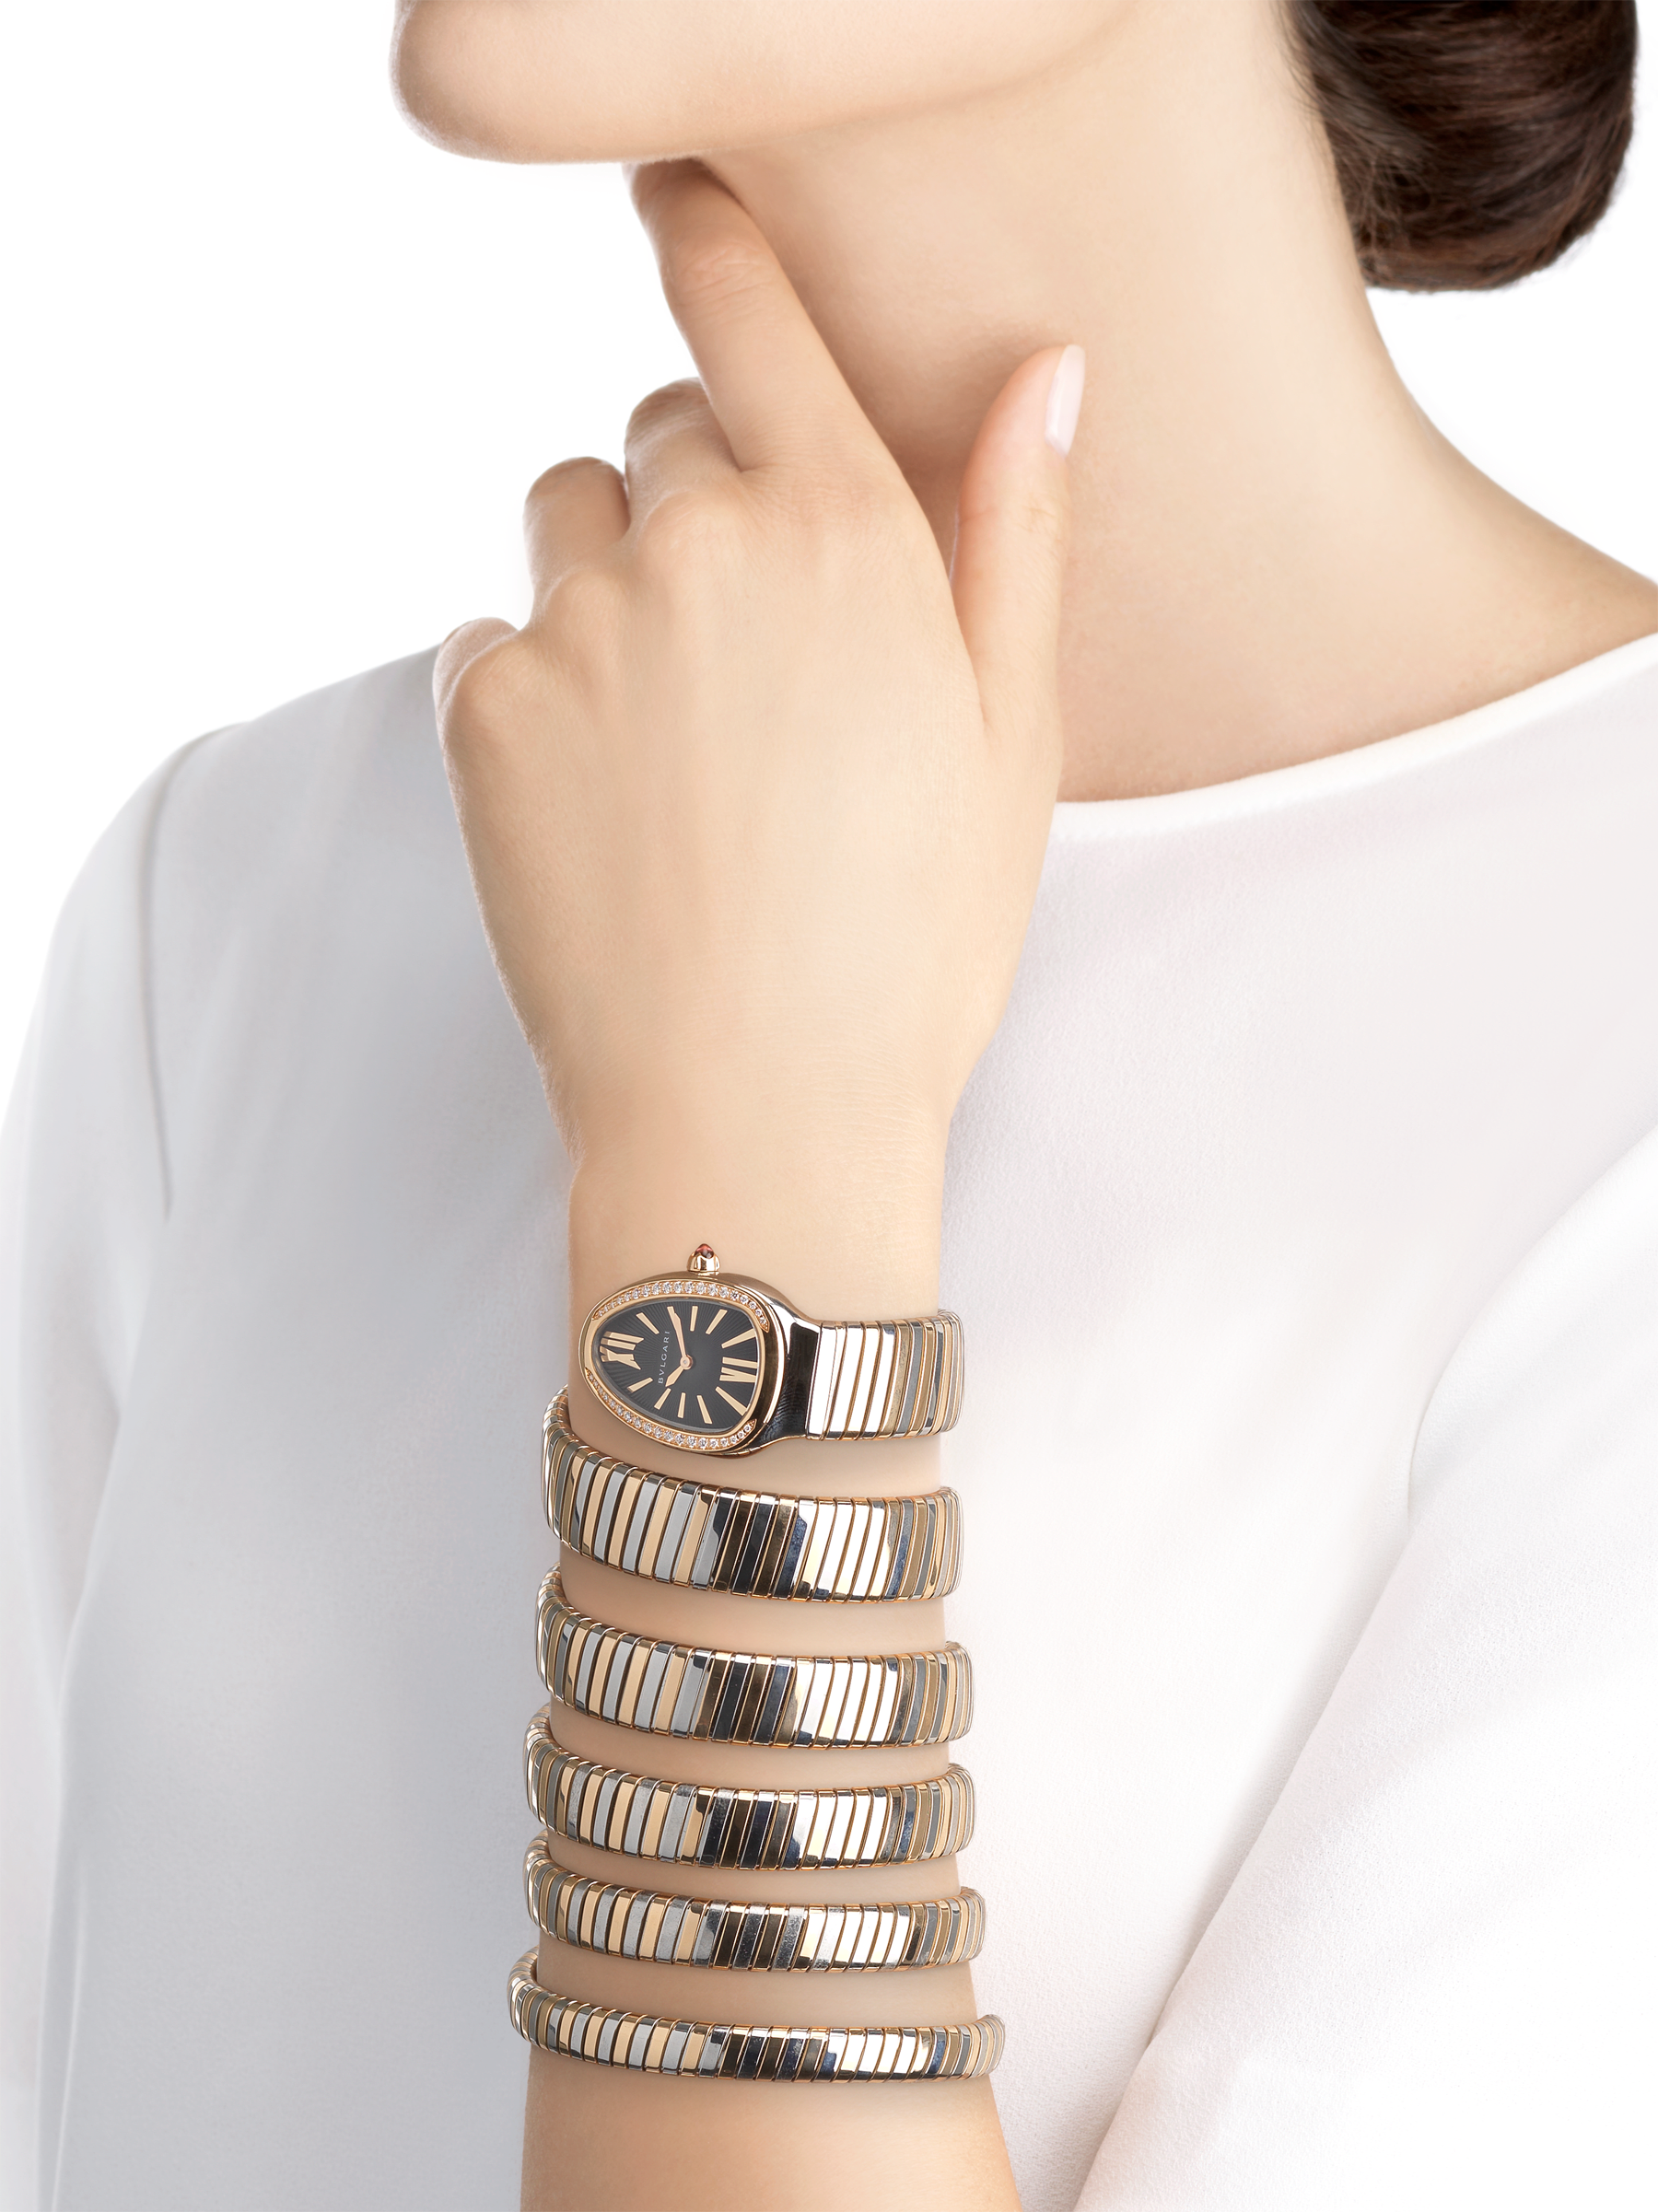 Serpenti Tubogas five-spiral watch with stainless steel case, 18 kt rose gold bezel set with brilliant cut diamonds, black lacquered dial, 18 kt rose gold and stainless steel bracelet. 102621 image 3